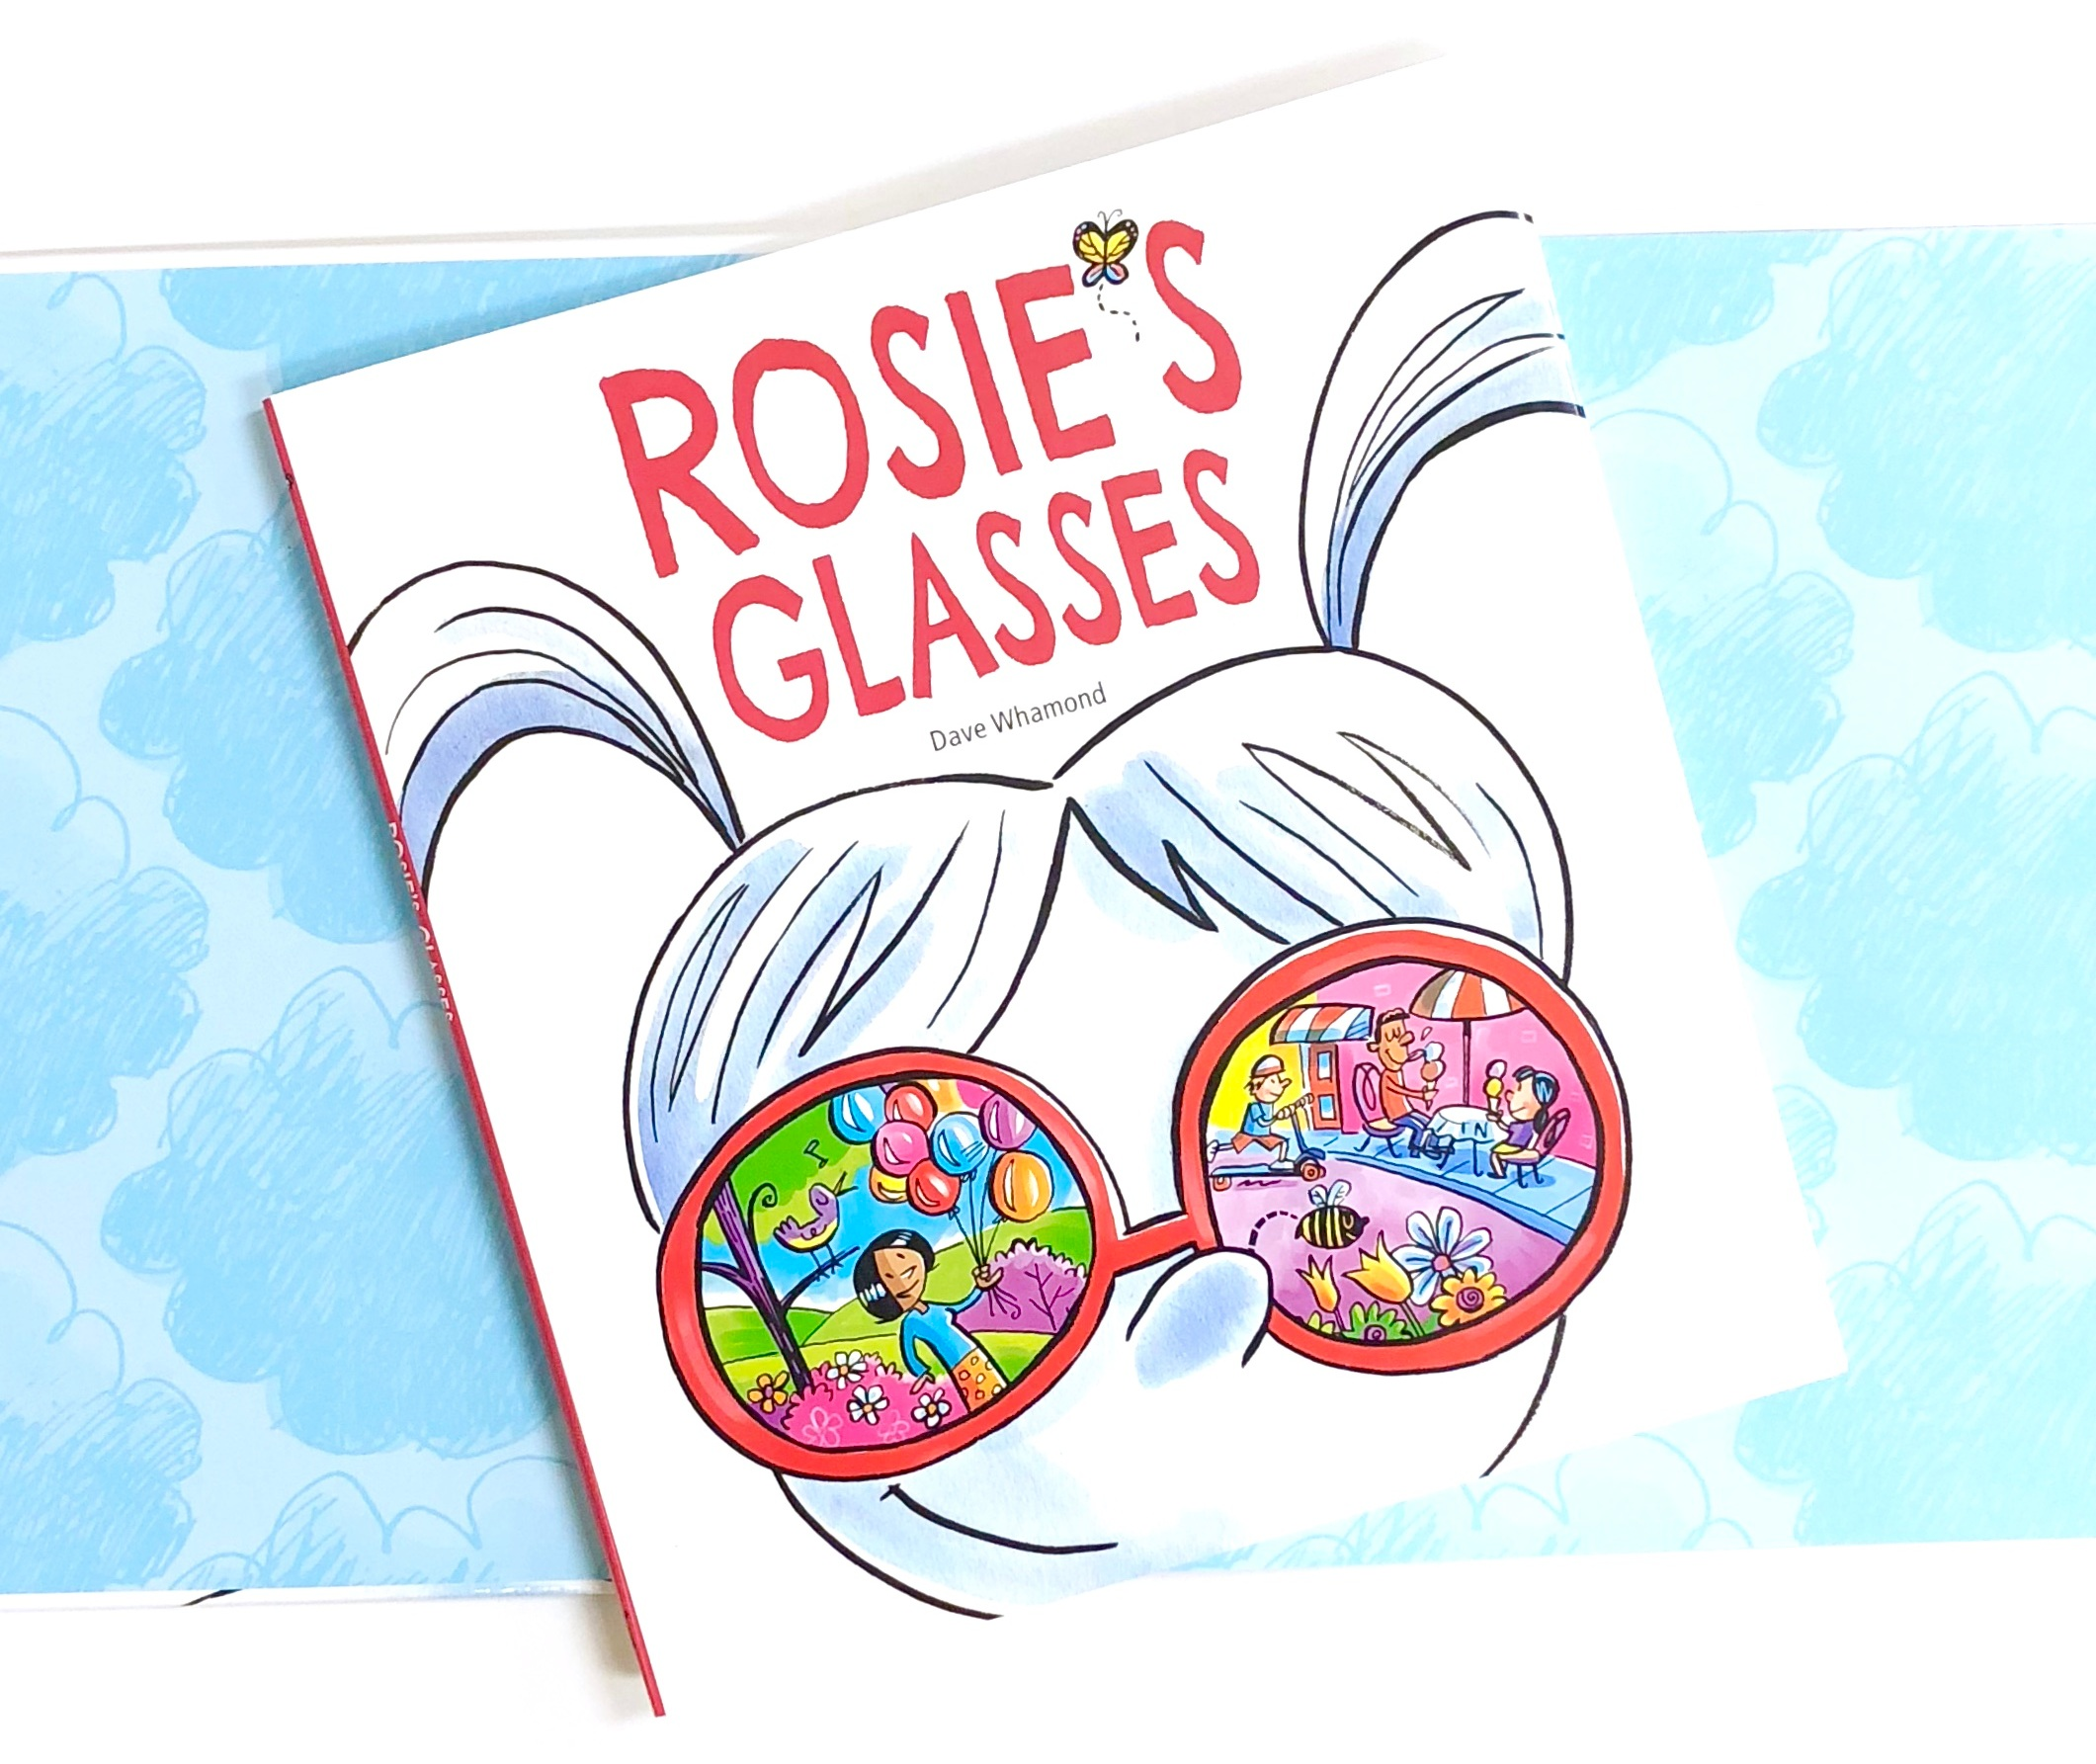 Teaching Perspective with Rosie's Glasses by Dave Whamond